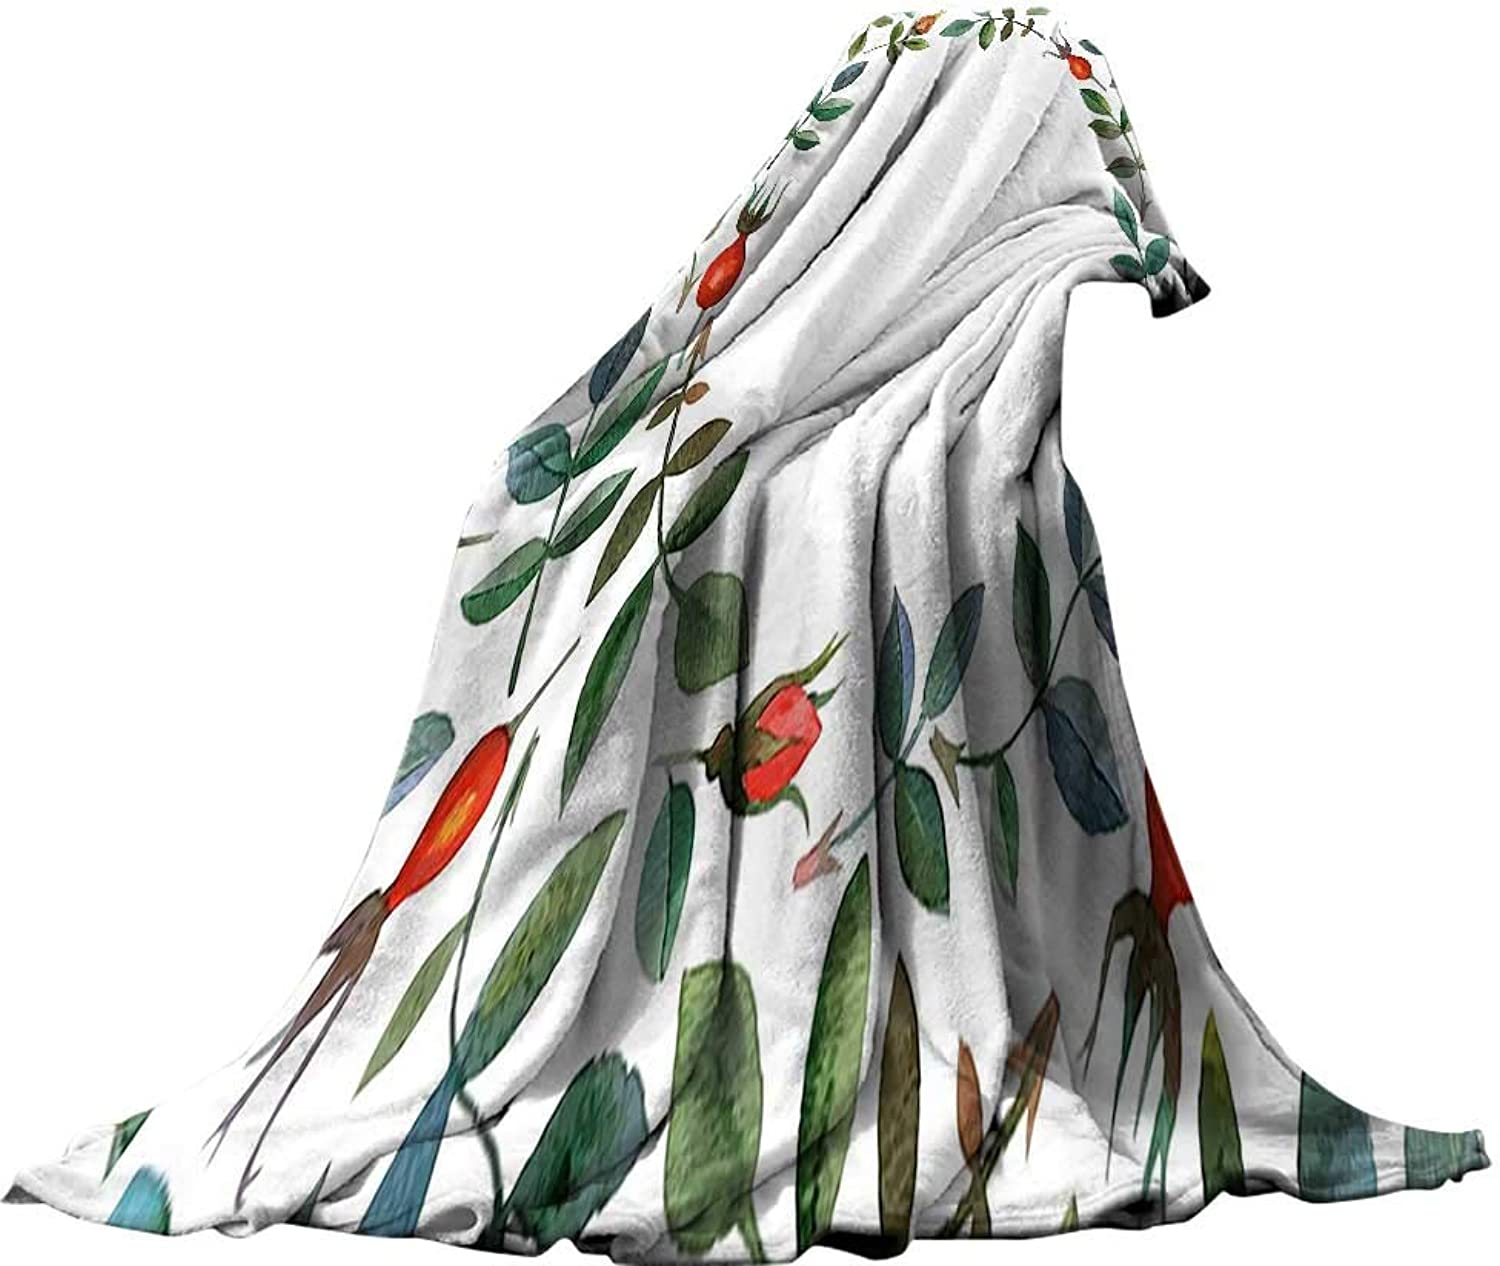 QINYANHome Lightweight Blanket (90 x70 ) Summer Quilt Comforter Floral Christmas Like Frame Image Buds Flowers Leaves Watercolor Vector Art Red Olive Green bluee Green.